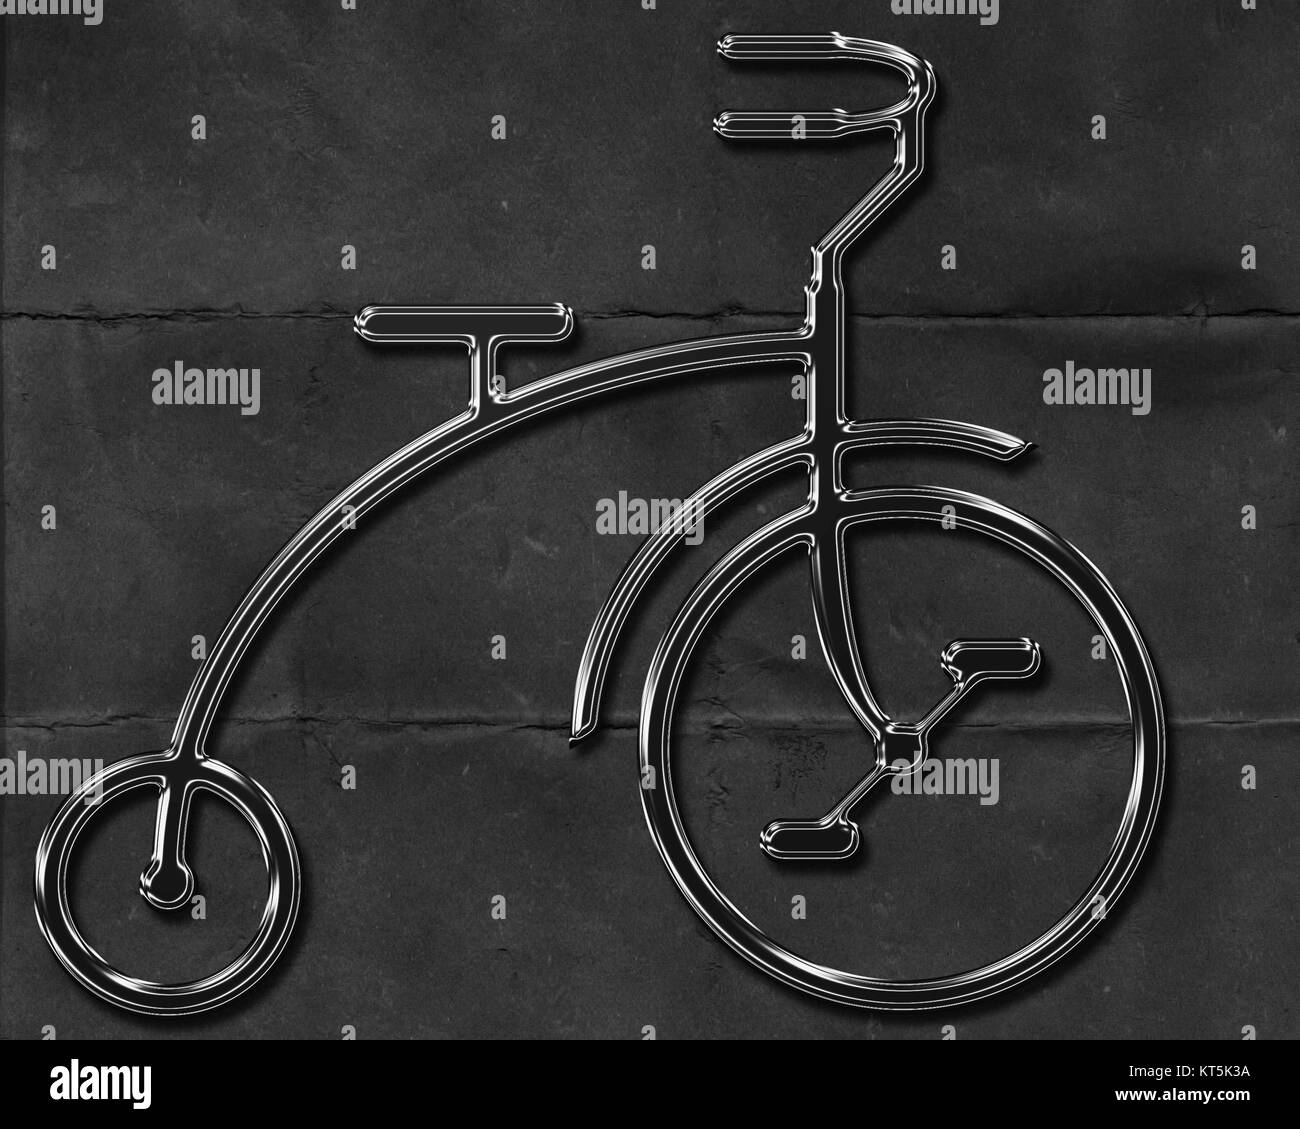 BIKE IT - Abstract metal bicycle on worn black background - Stock Image